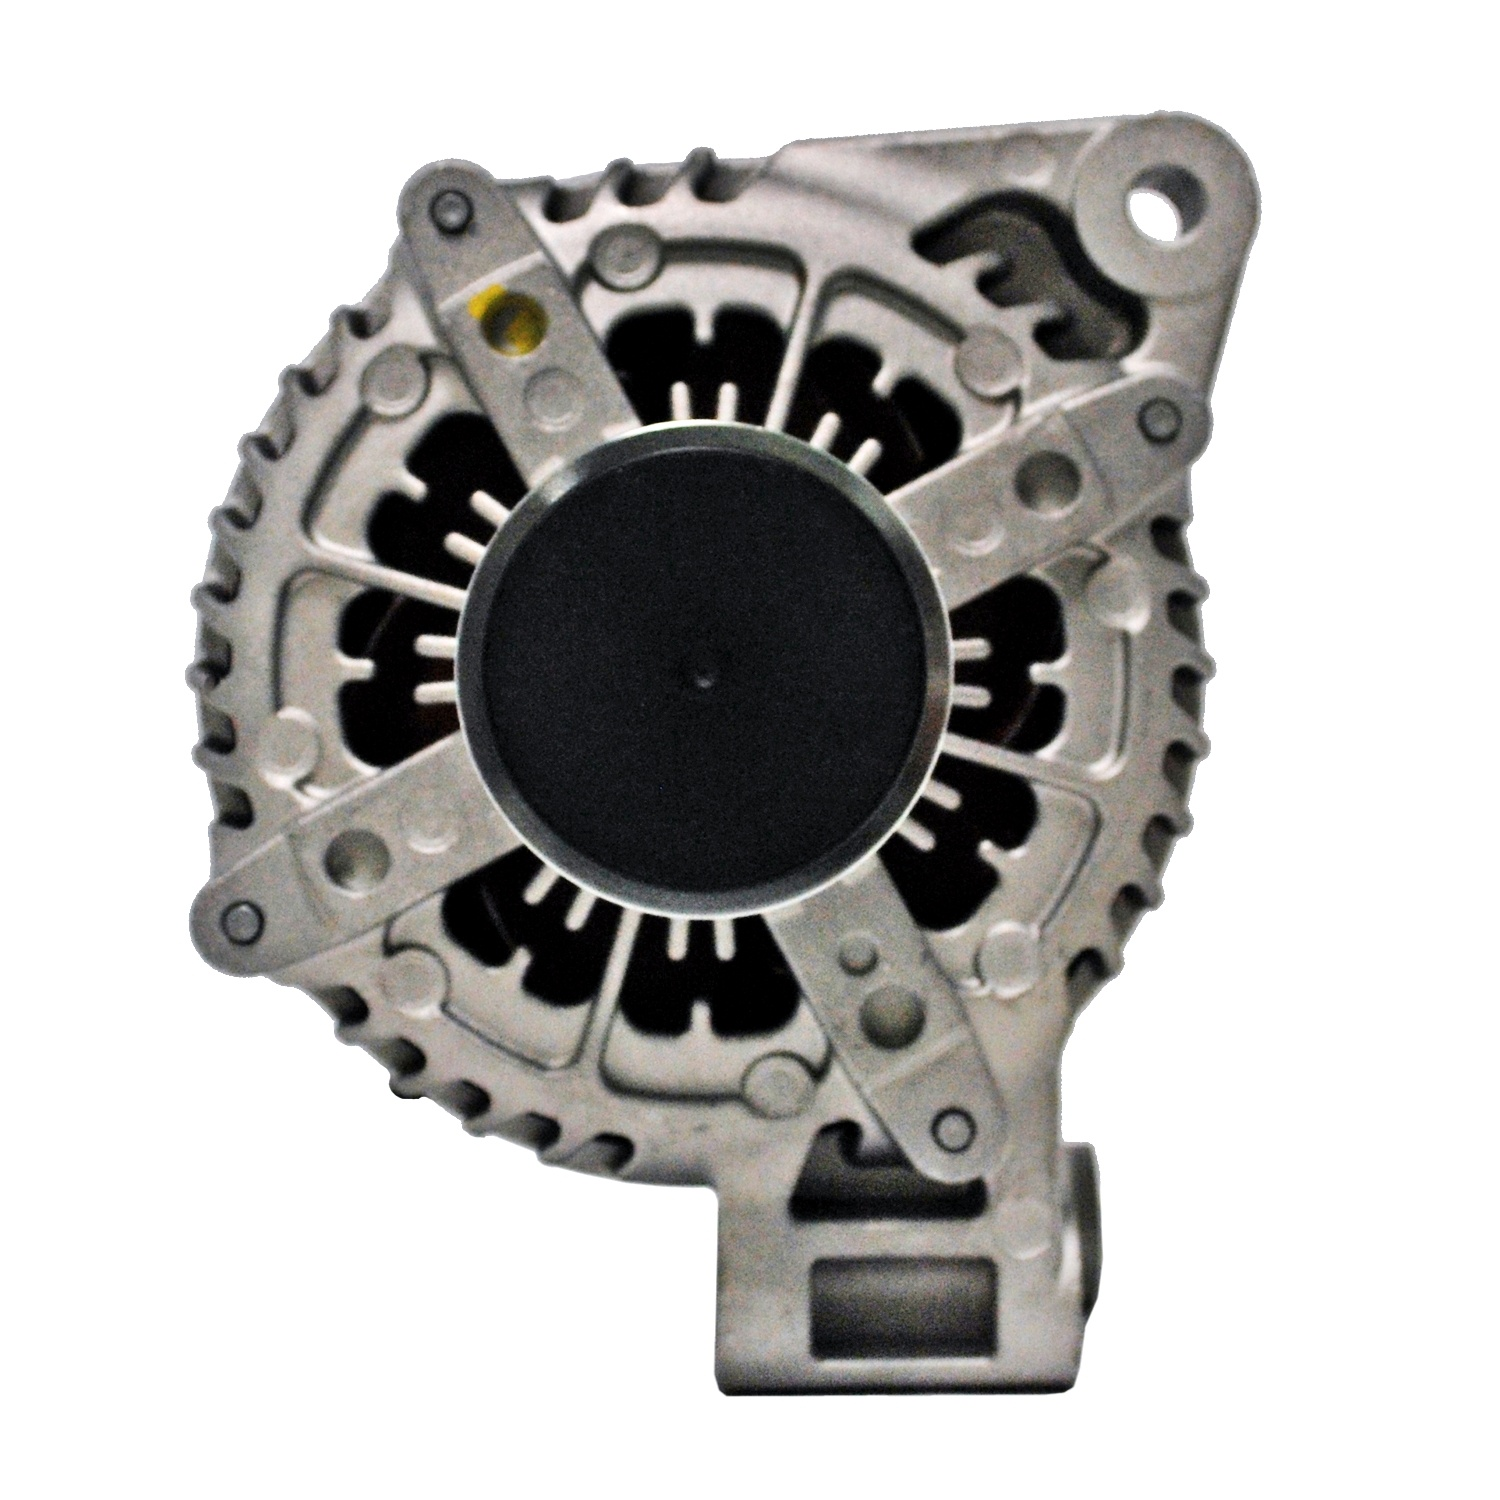 ACDELCO GOLD/PROFESSIONAL - Reman Alternator - DCC 334-2923A